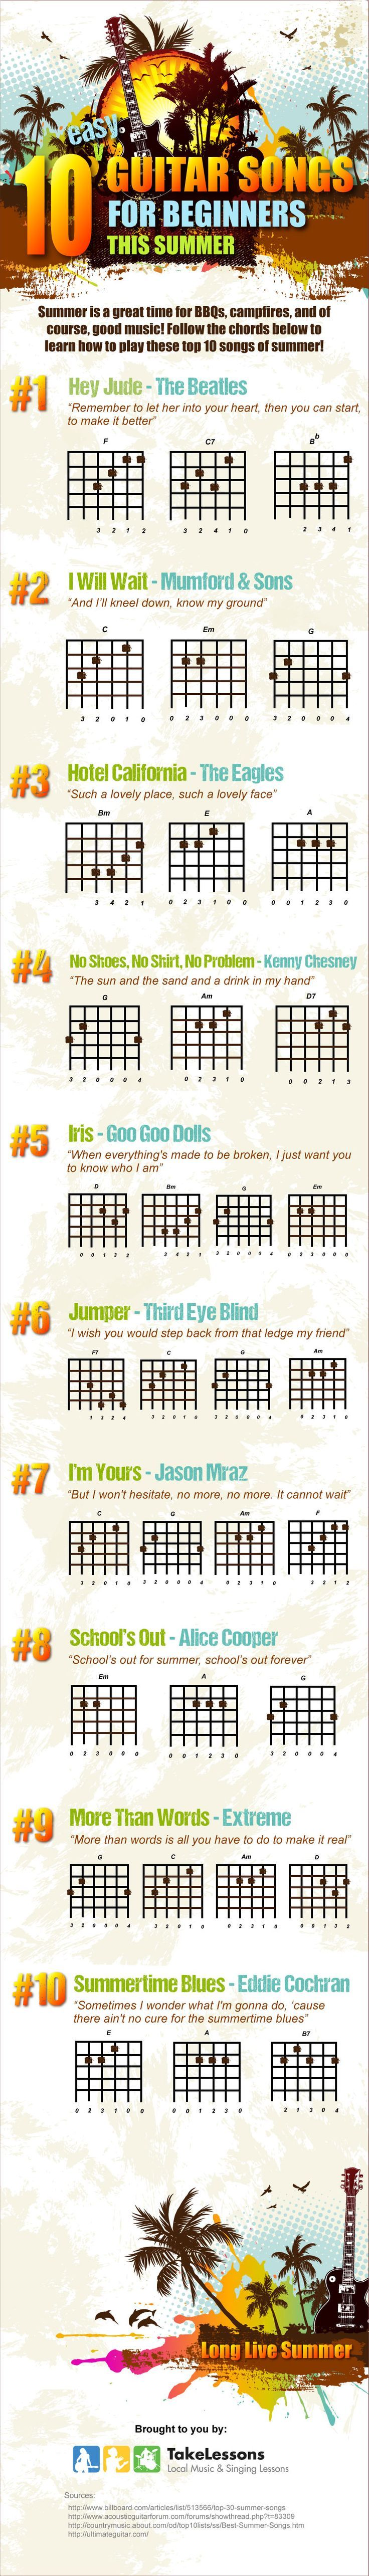 Basic Guitar Chords You Can Learn Today and How to Play Them